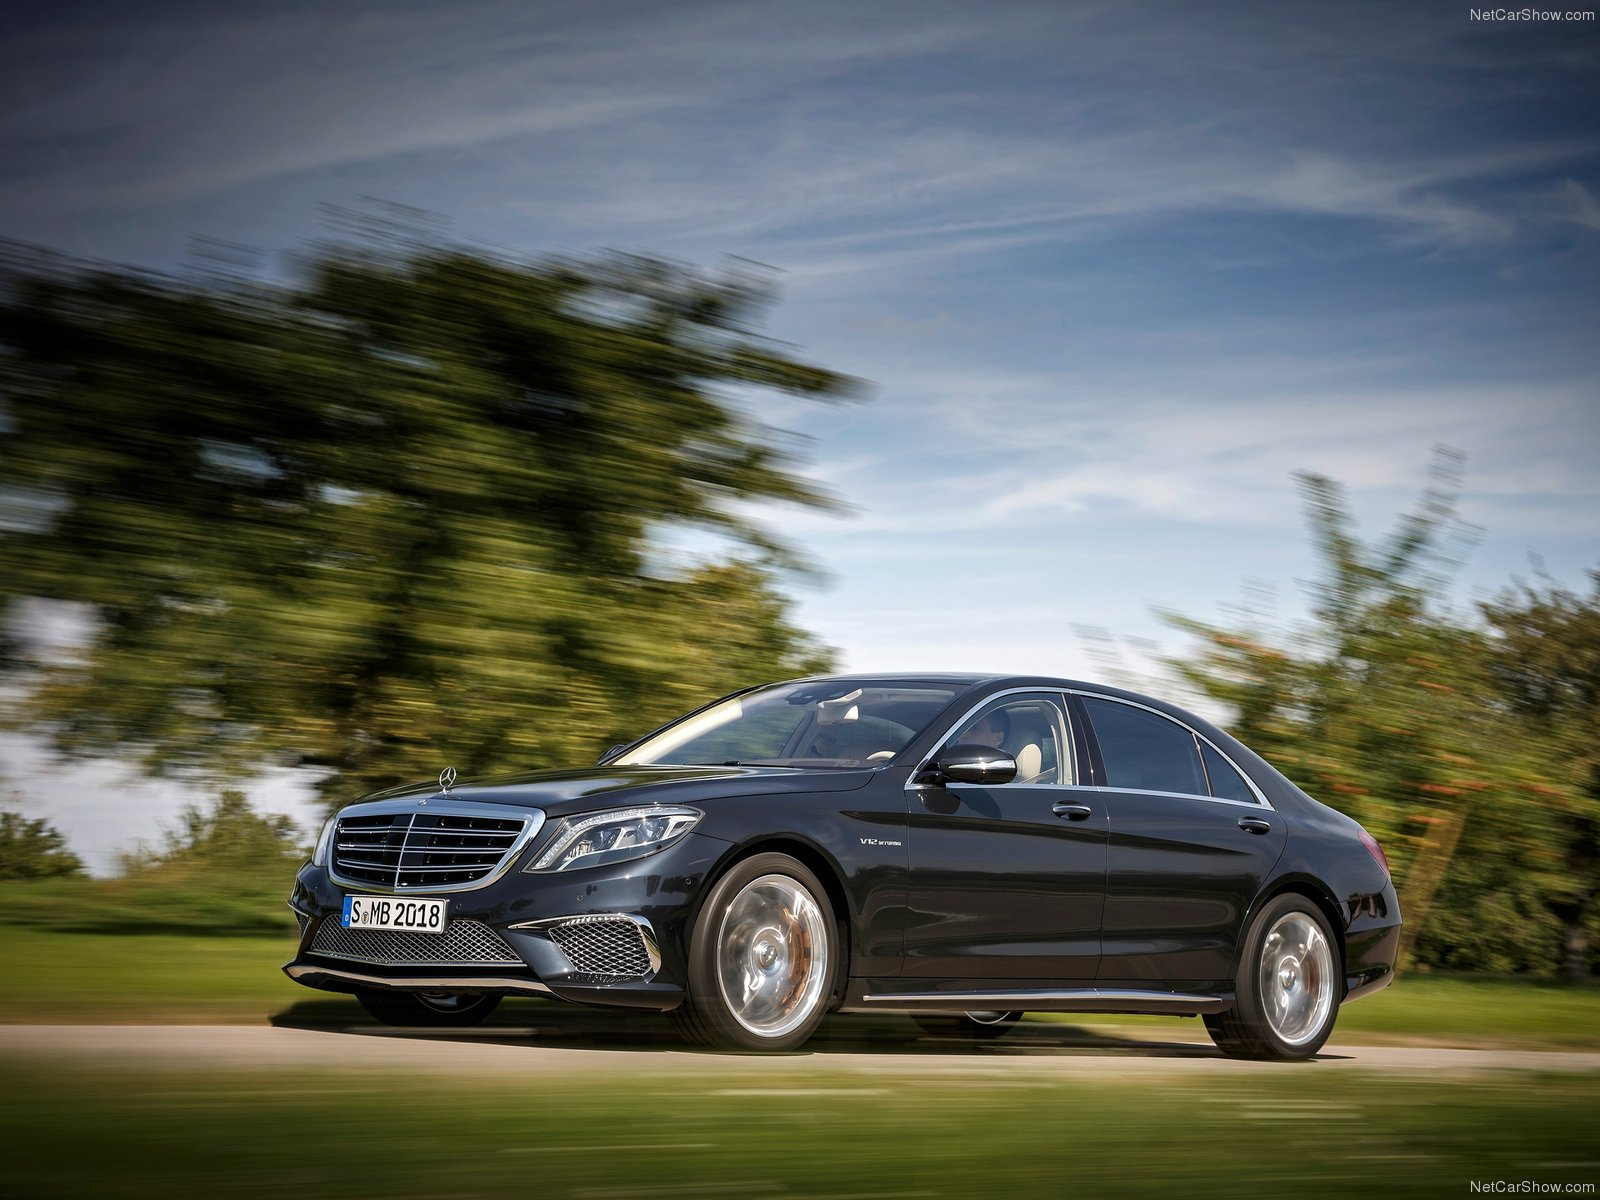 Mercedes-Benz-S65_AMG_2014_1600x1200_wallpaper_01.jpg